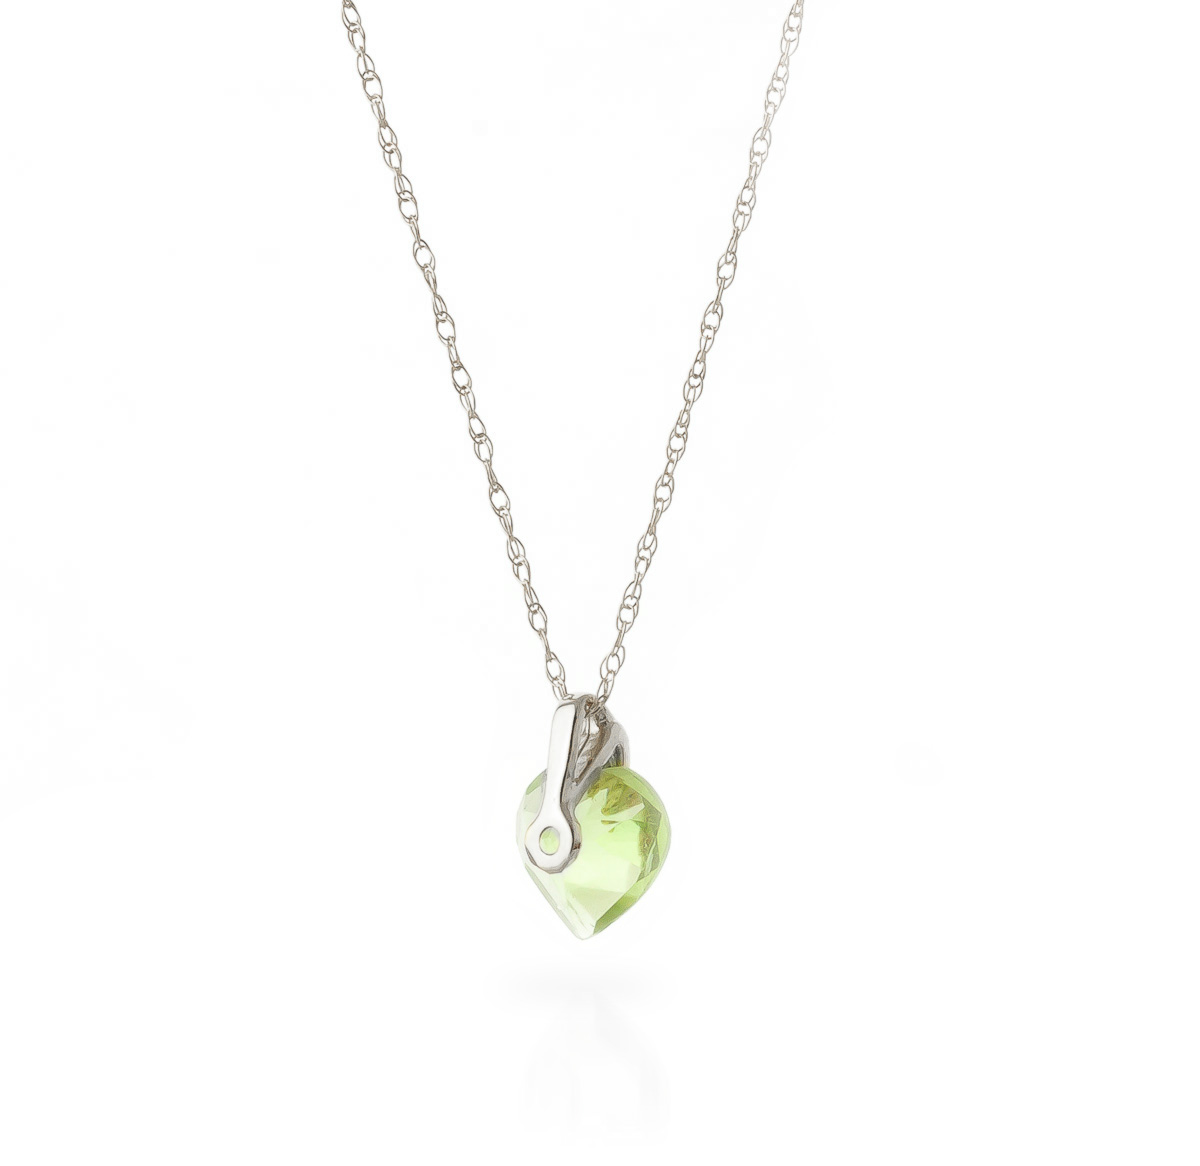 Peridot Heart Pendant Necklace 1.15 ct in 9ct White Gold